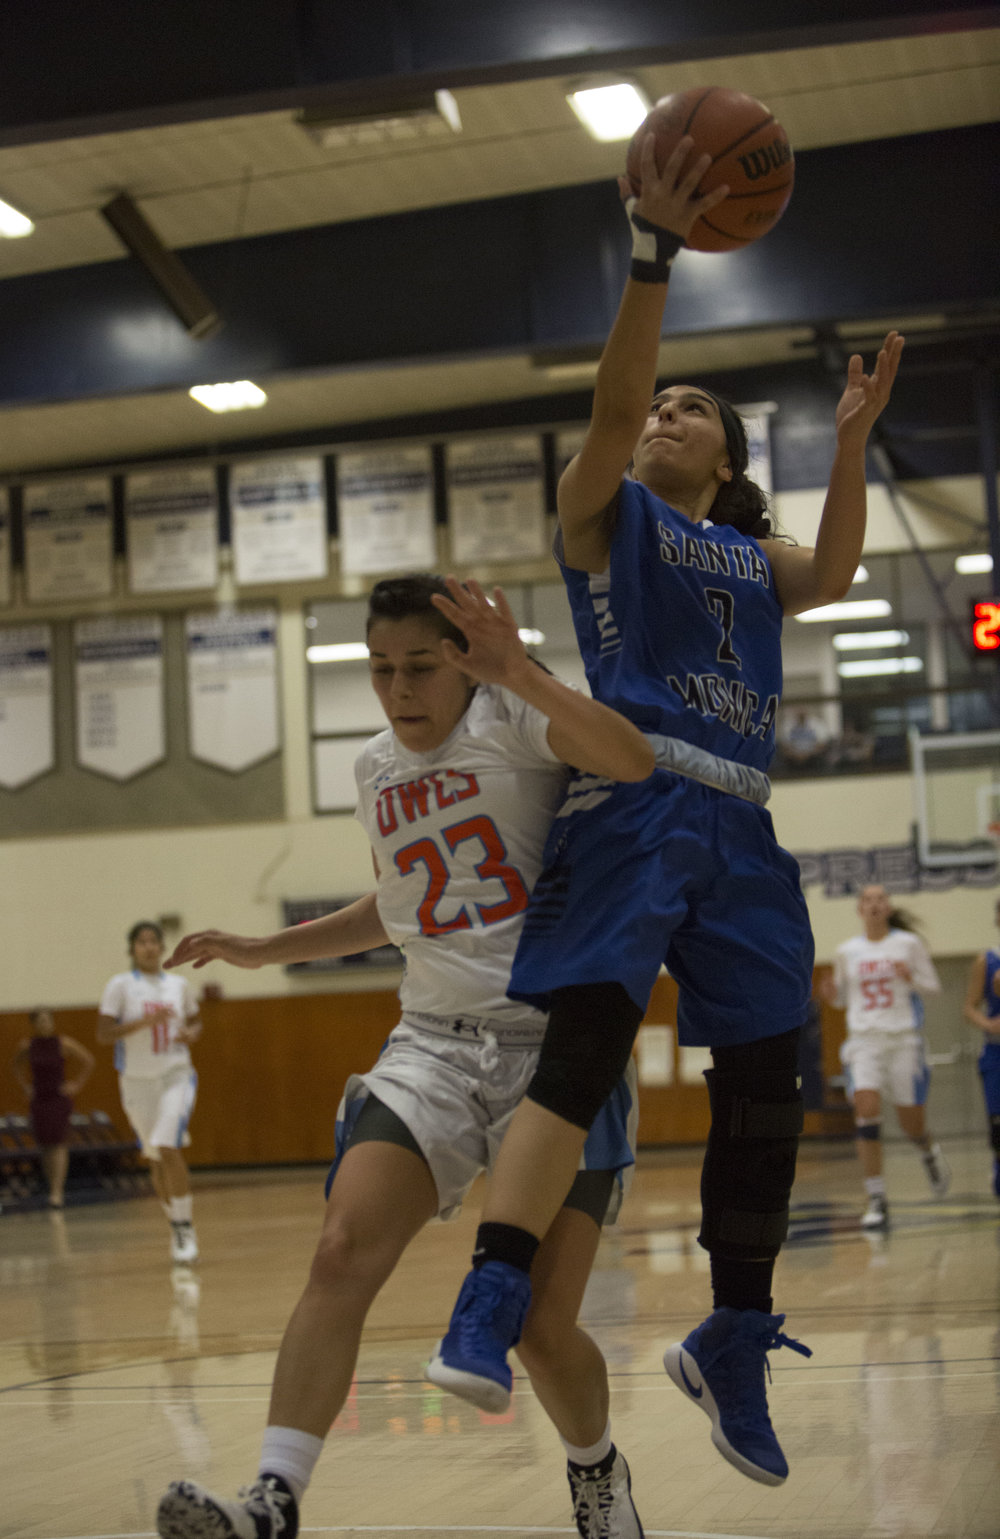 December 4th 2016. The Santa Monica College Corsair Womens Basketball team freshman guard (2) Jessica Melamed (blue,right) had an open break away but would be fouled by The Citrus College Owls freshman guard (23) Cassandra Martinez (white,left)  in the 33rd annual Lady Charger Classic basketball tournament hosted by Cypress College in Cypress, Calif.. The Corsairs would win 74-69 earning them third place in the tournament. Photo By: Daniel Bowyer/Corsair Staff